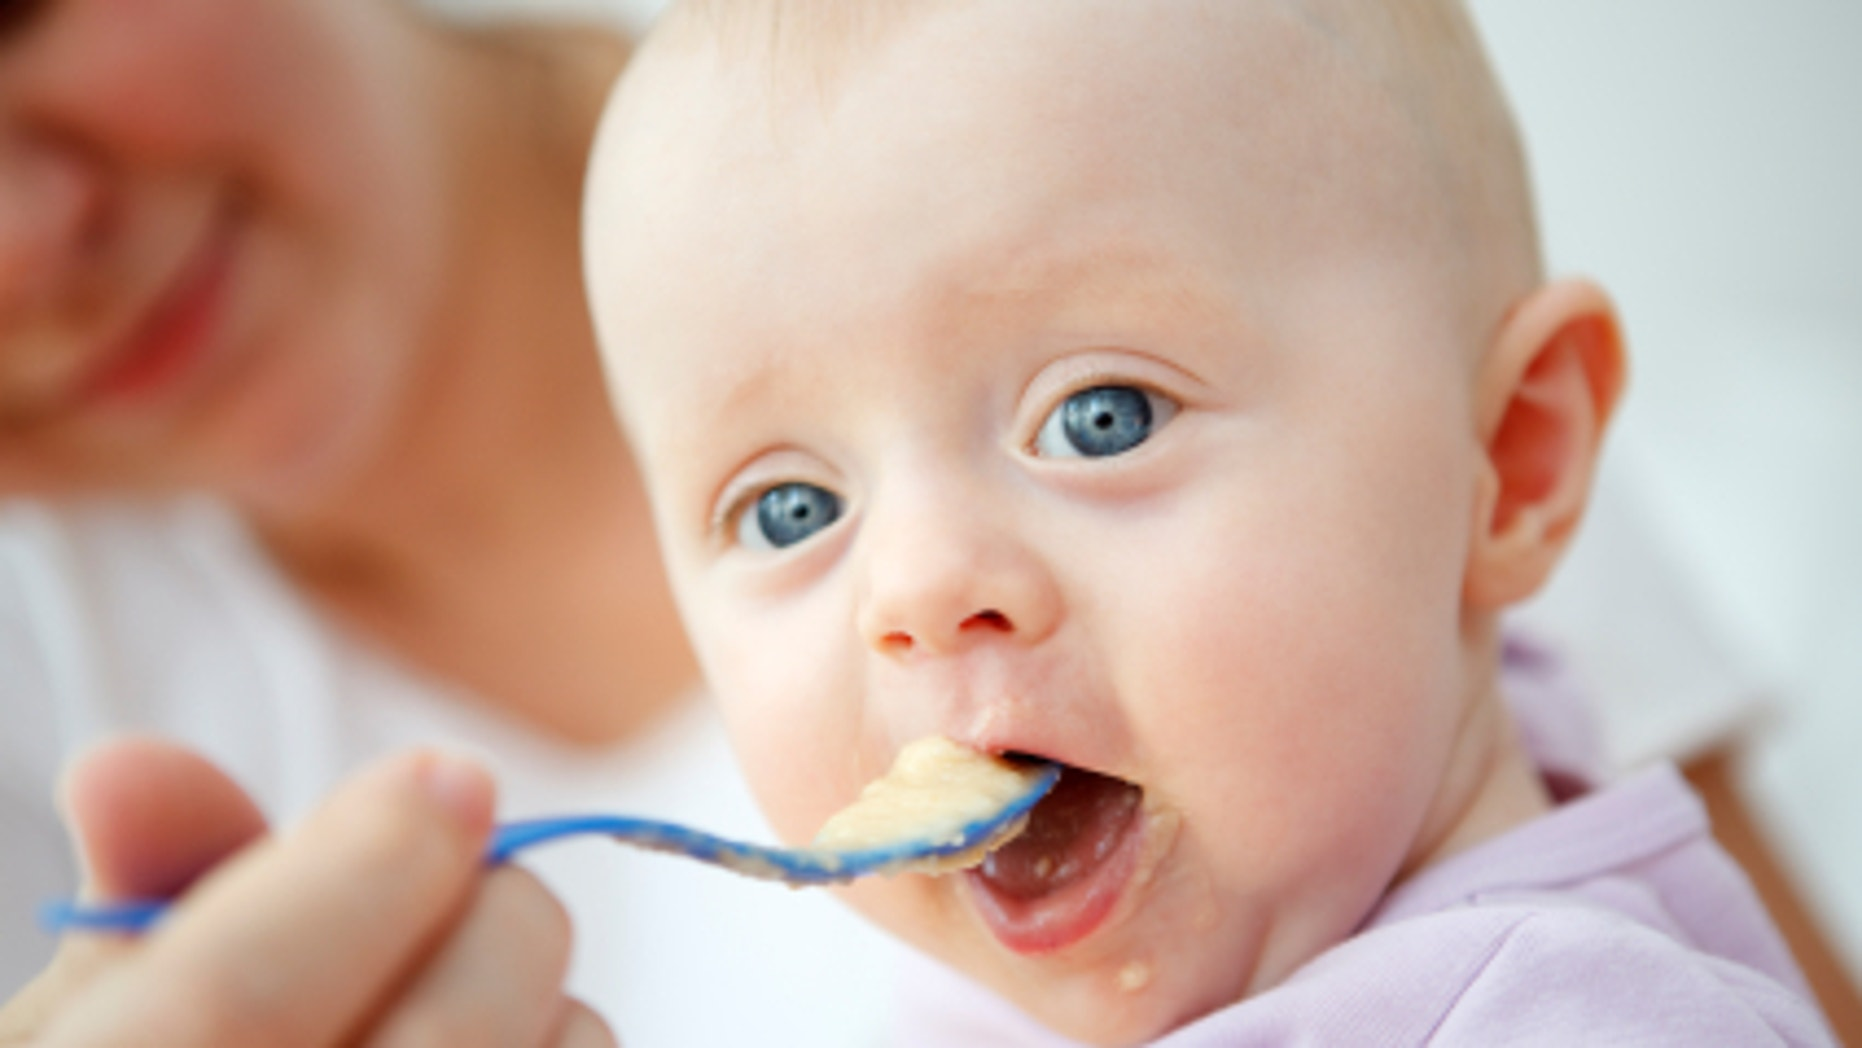 What you need to know about food allergies in infants: 5 important facts